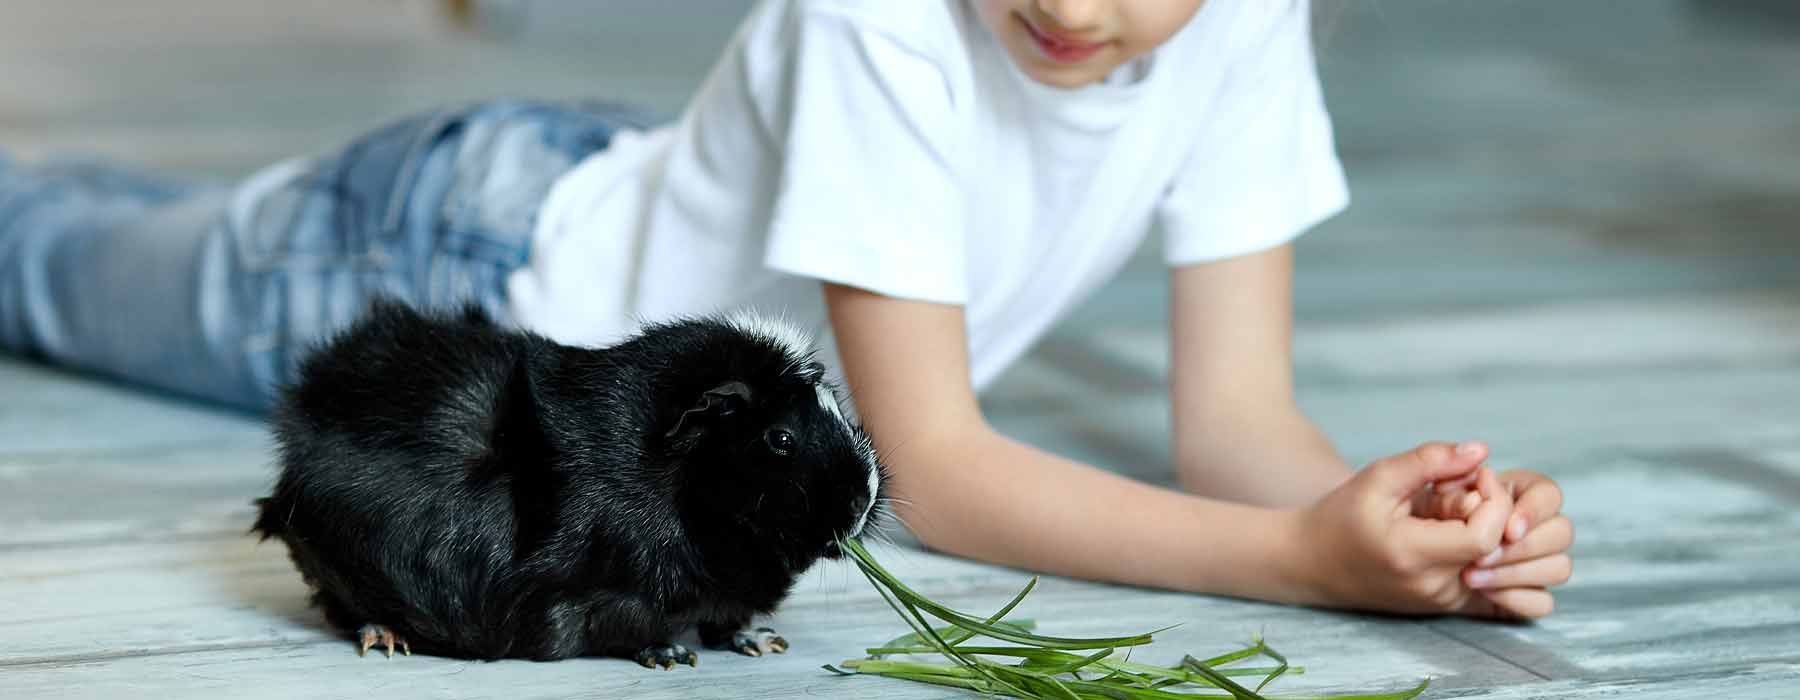 tame guinea pig eating grass next to child on the floor